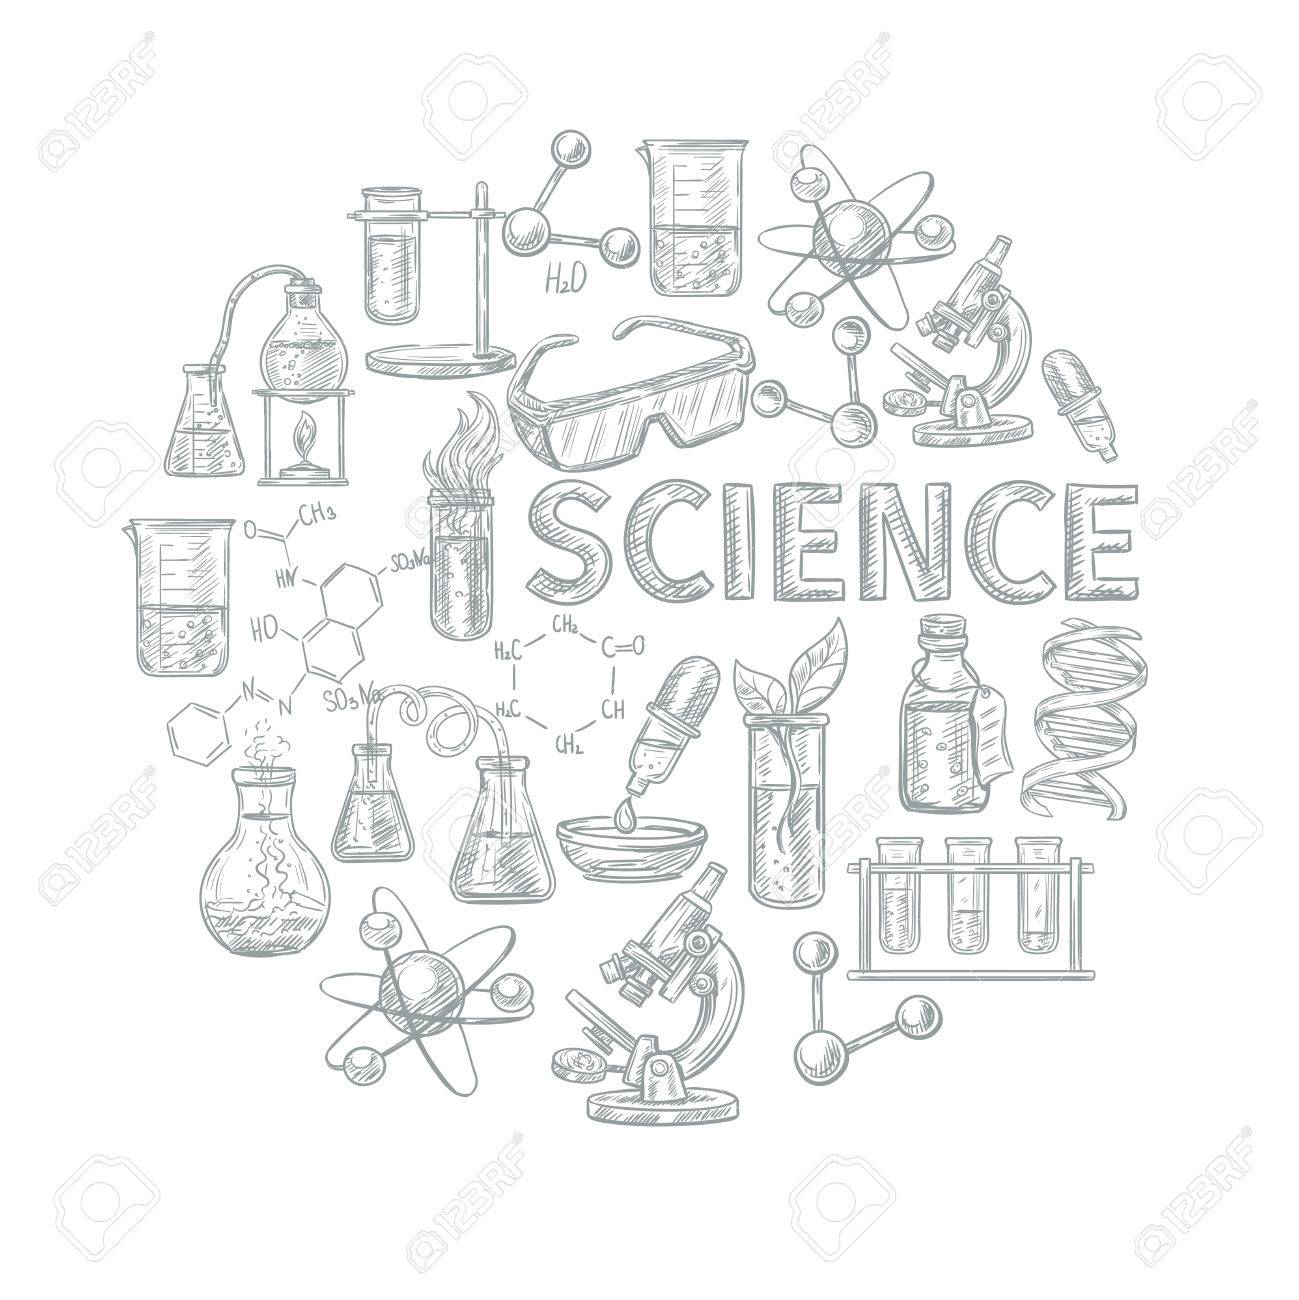 chemistry sketch concept with school learning and science symbols